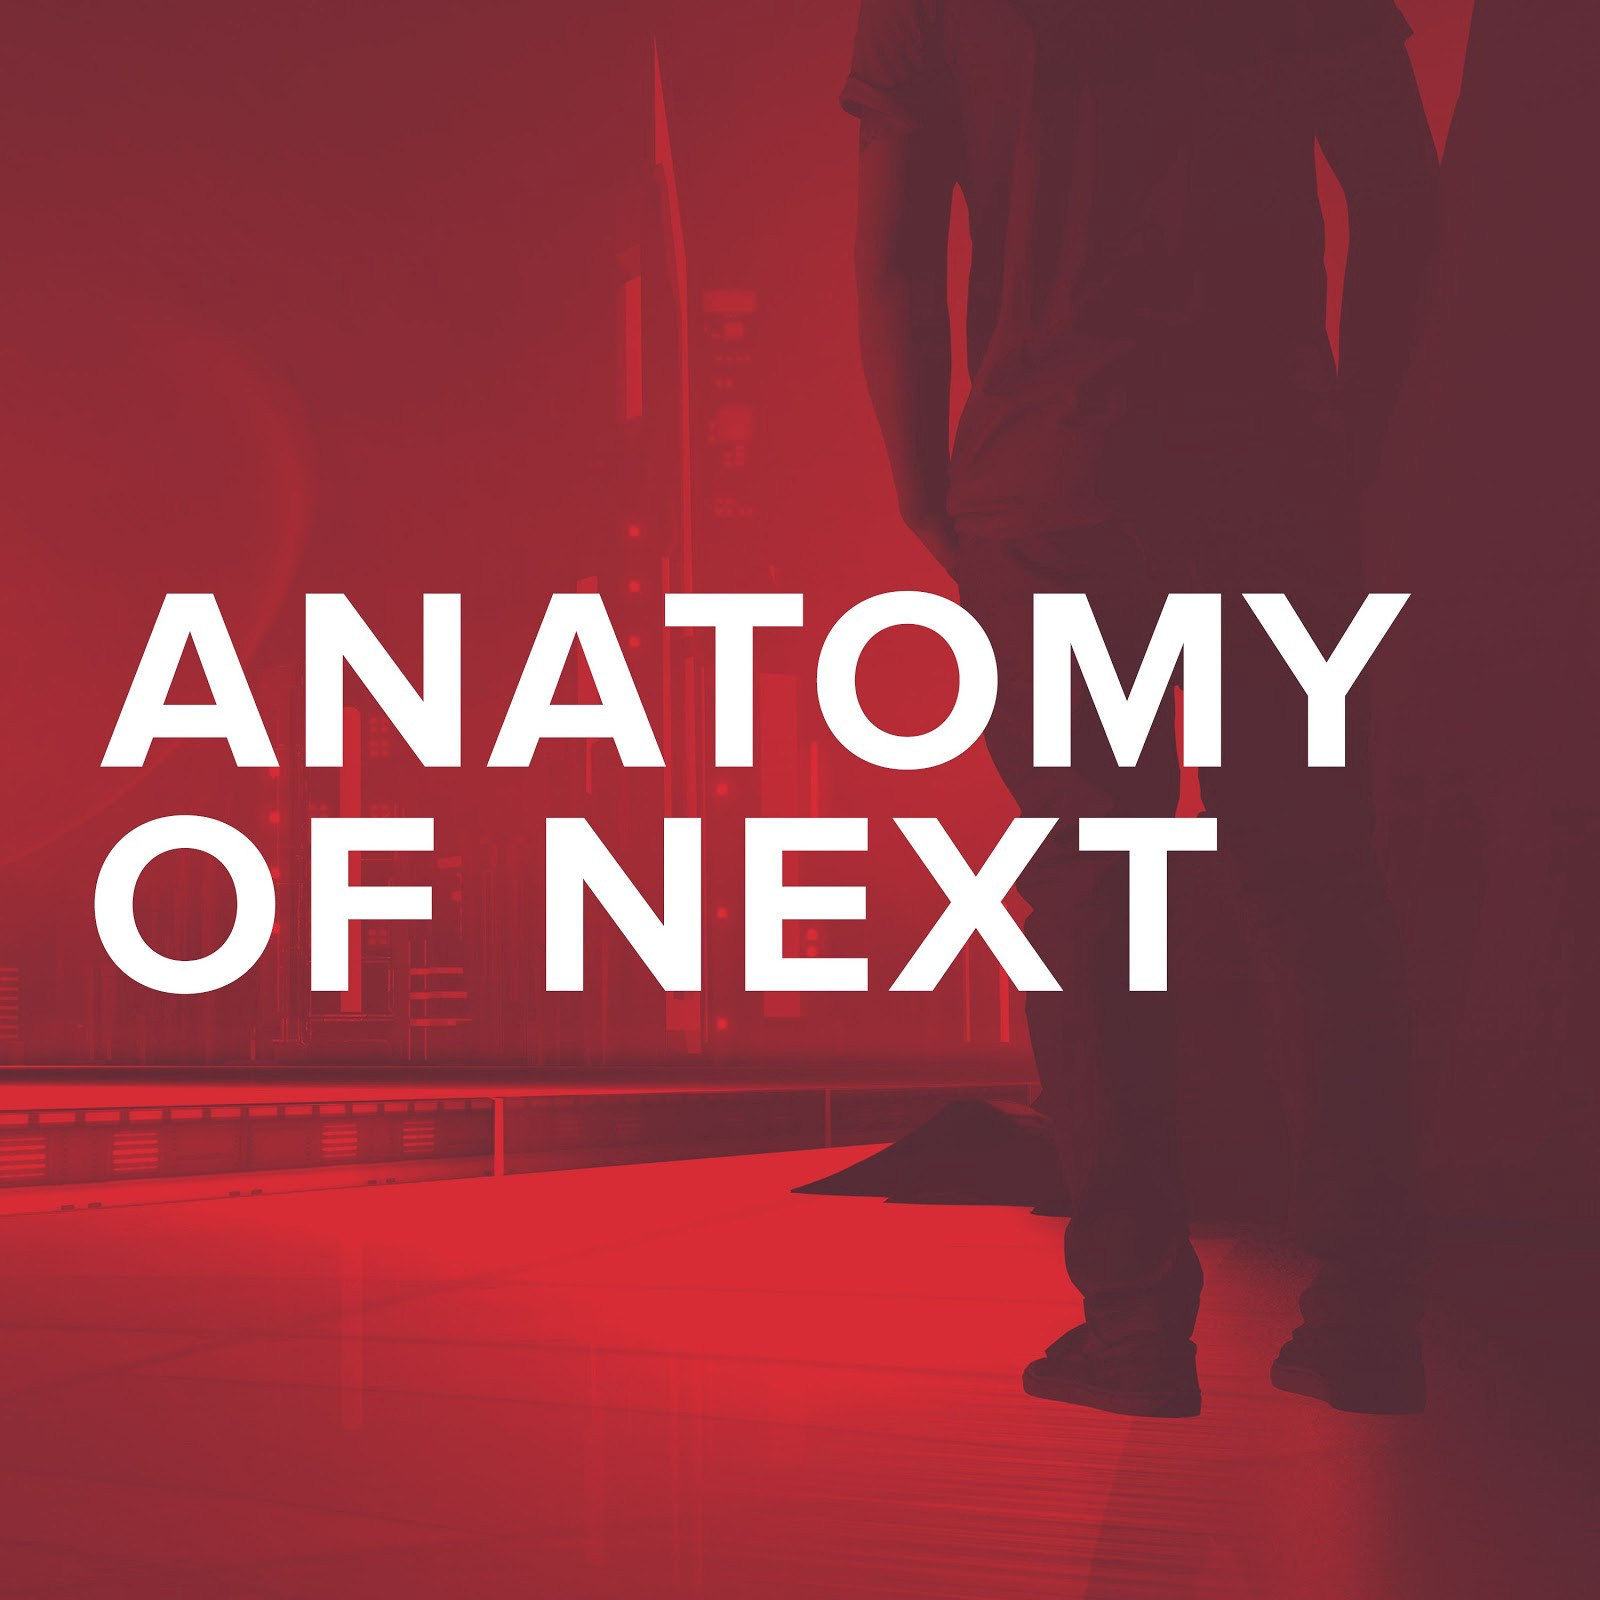 Anatomy Of Next Themes Philosophy Science Technology Business